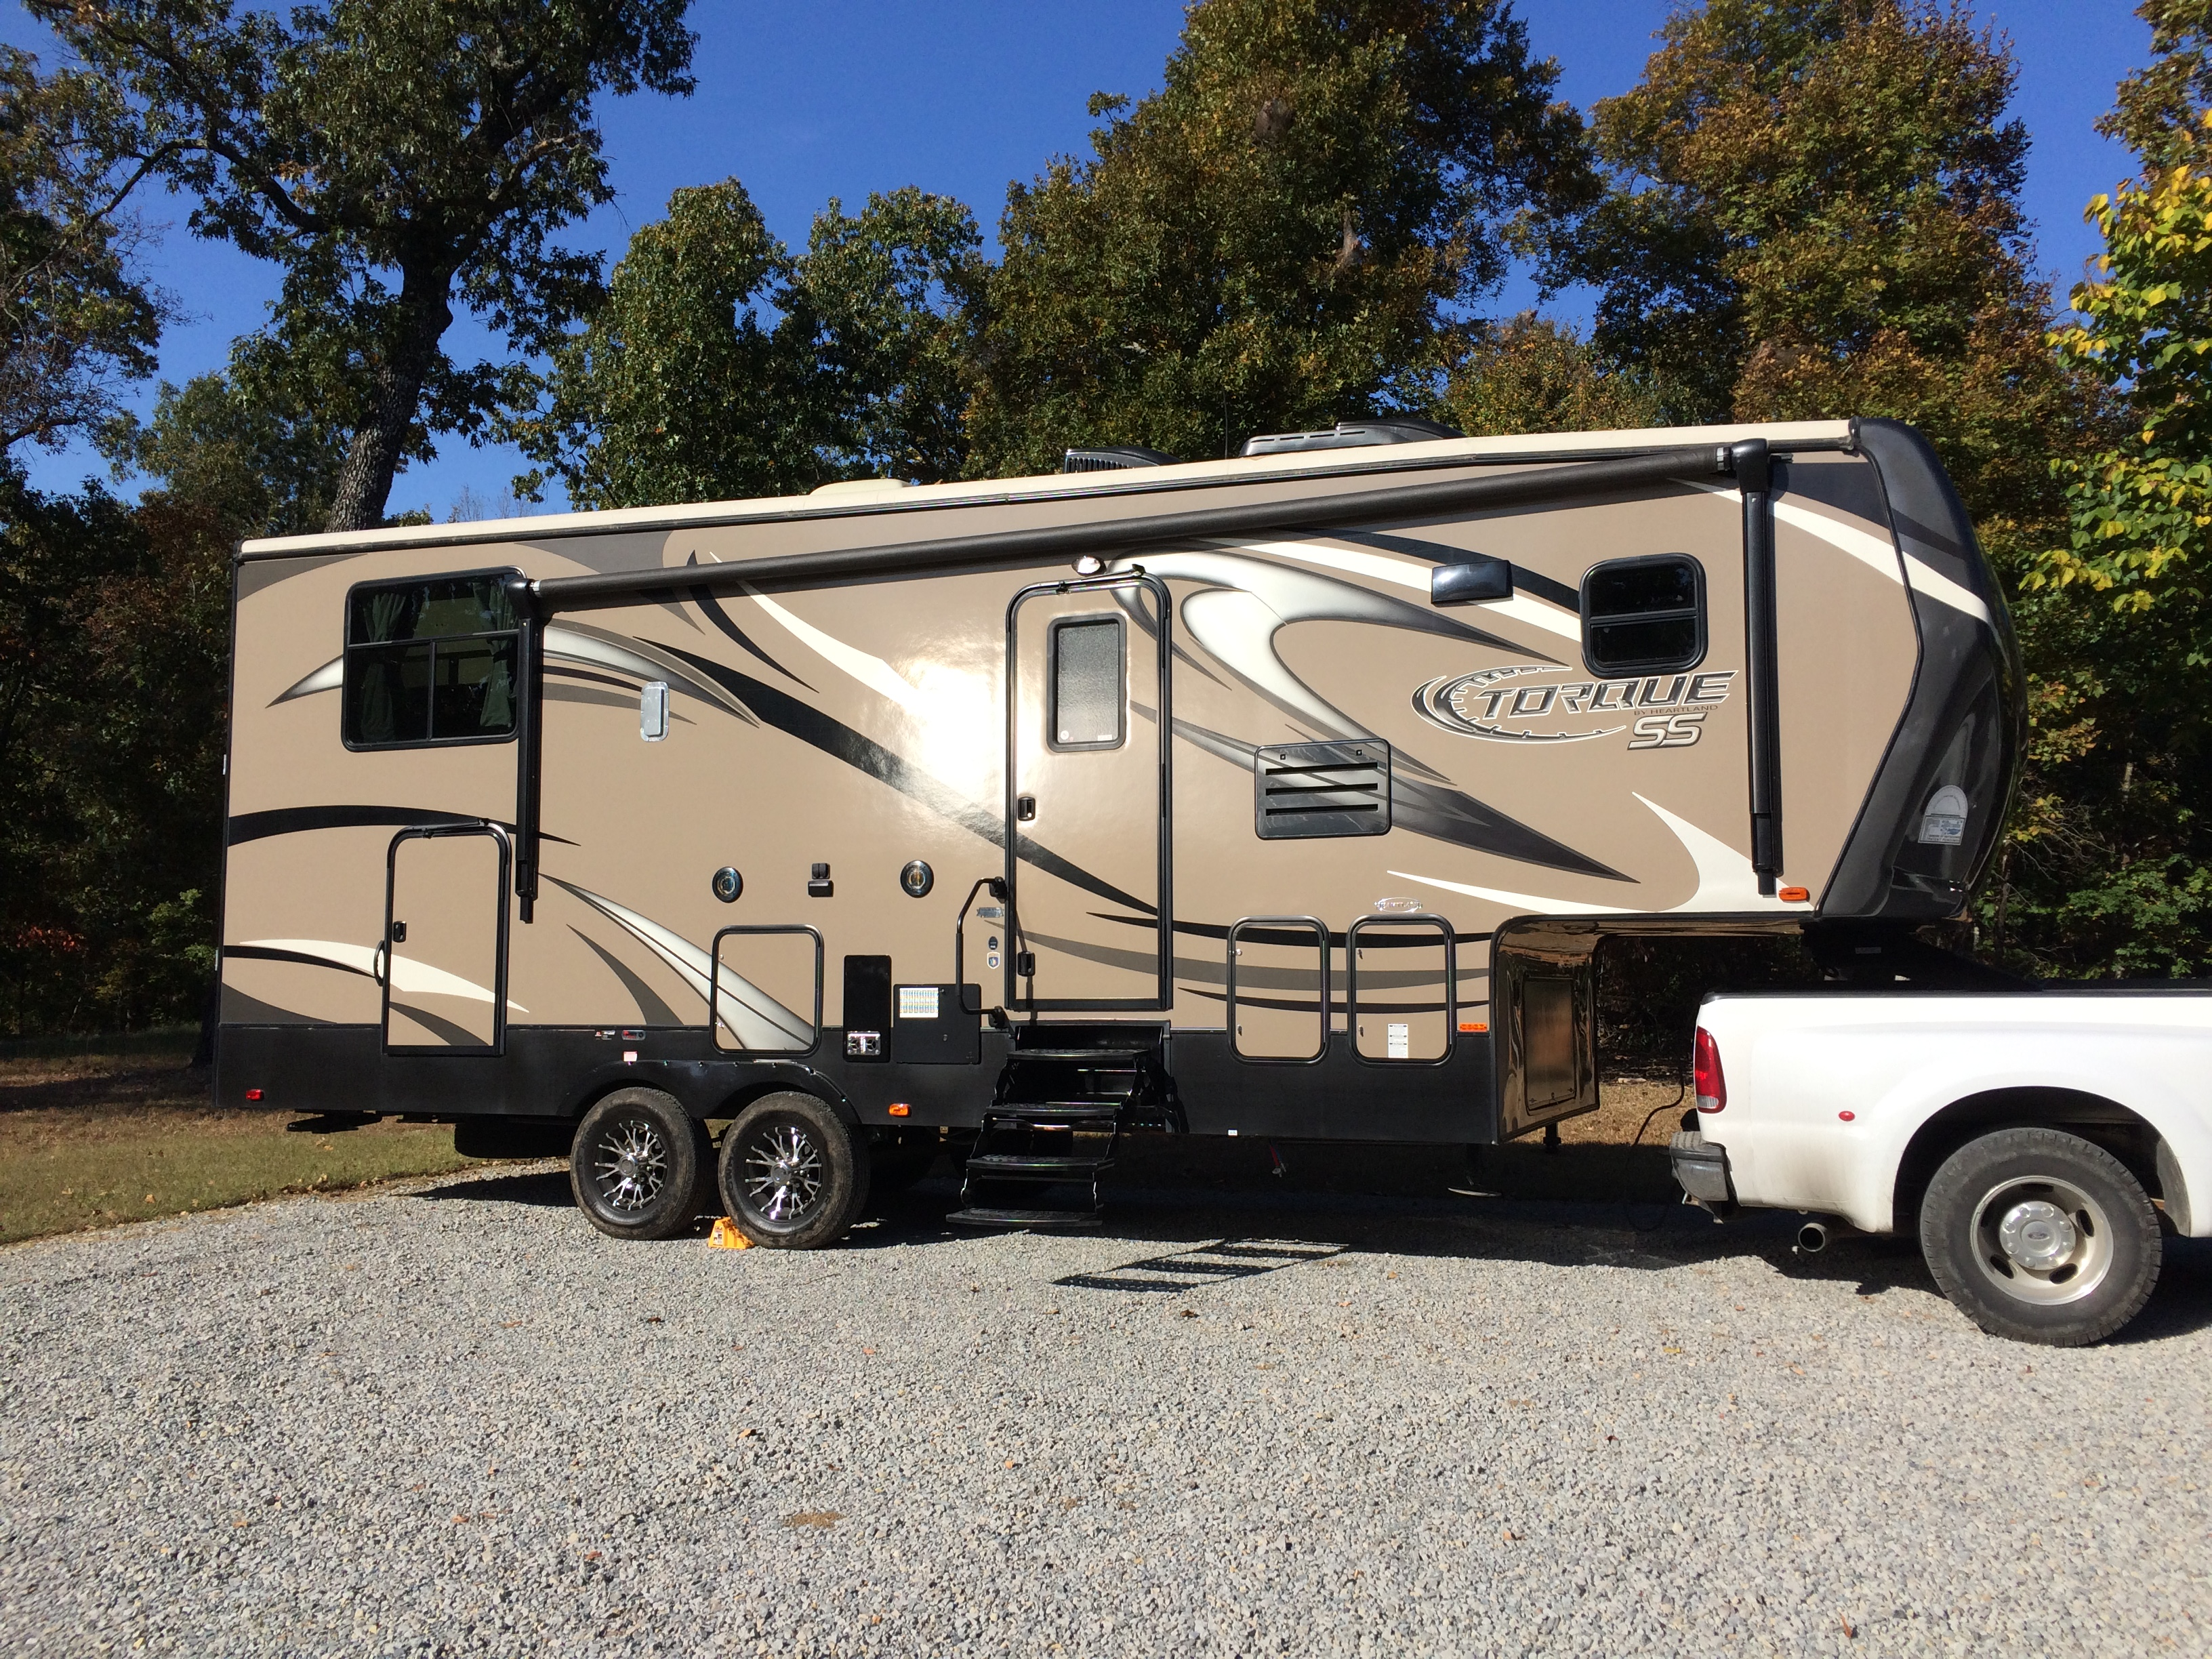 You can see the awning runs almost the full length of the RV and has LED lights. Great for the evenings!. Heartland Torque 270HG 2014